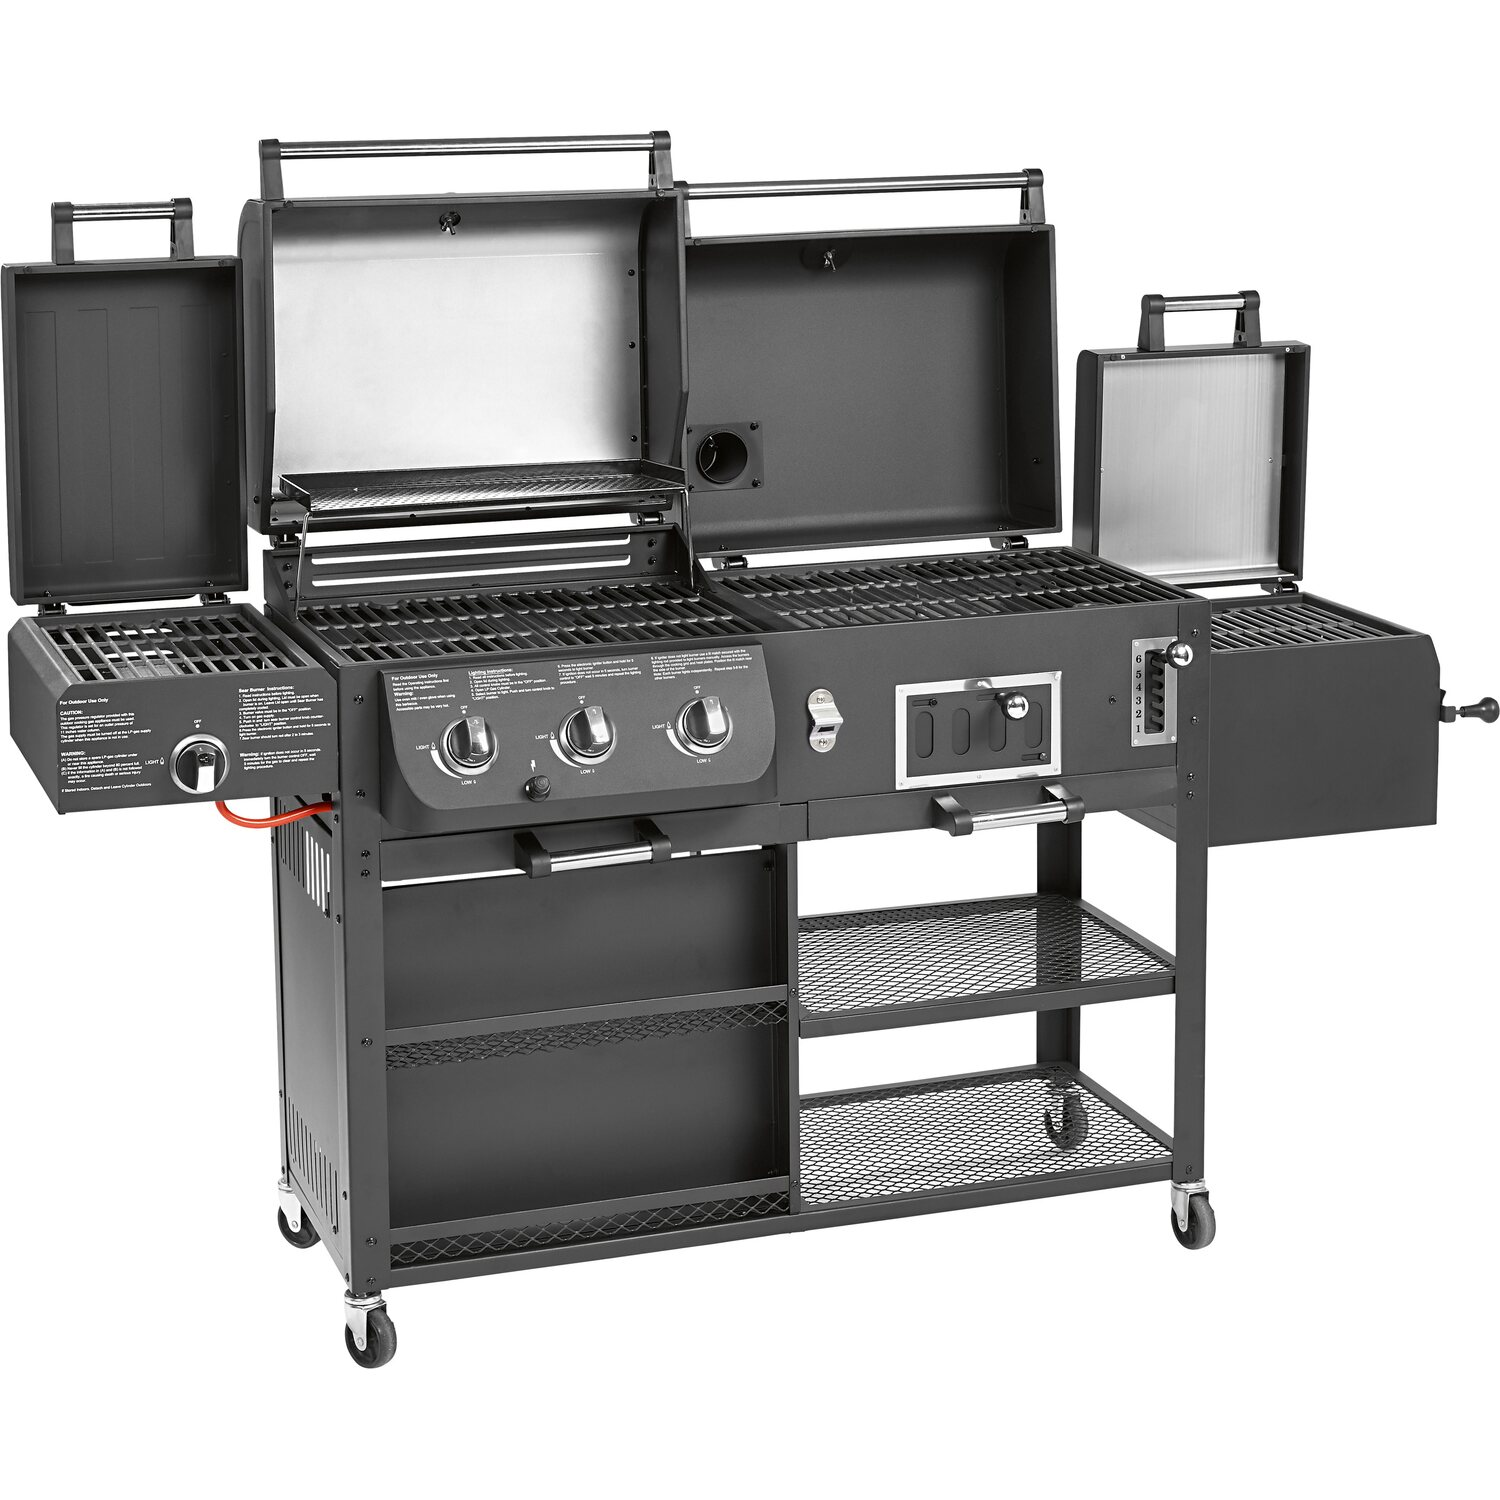 Yard, Garden & Outdoor Living Provided Pinza Da Barbecue In Acciaio Inox